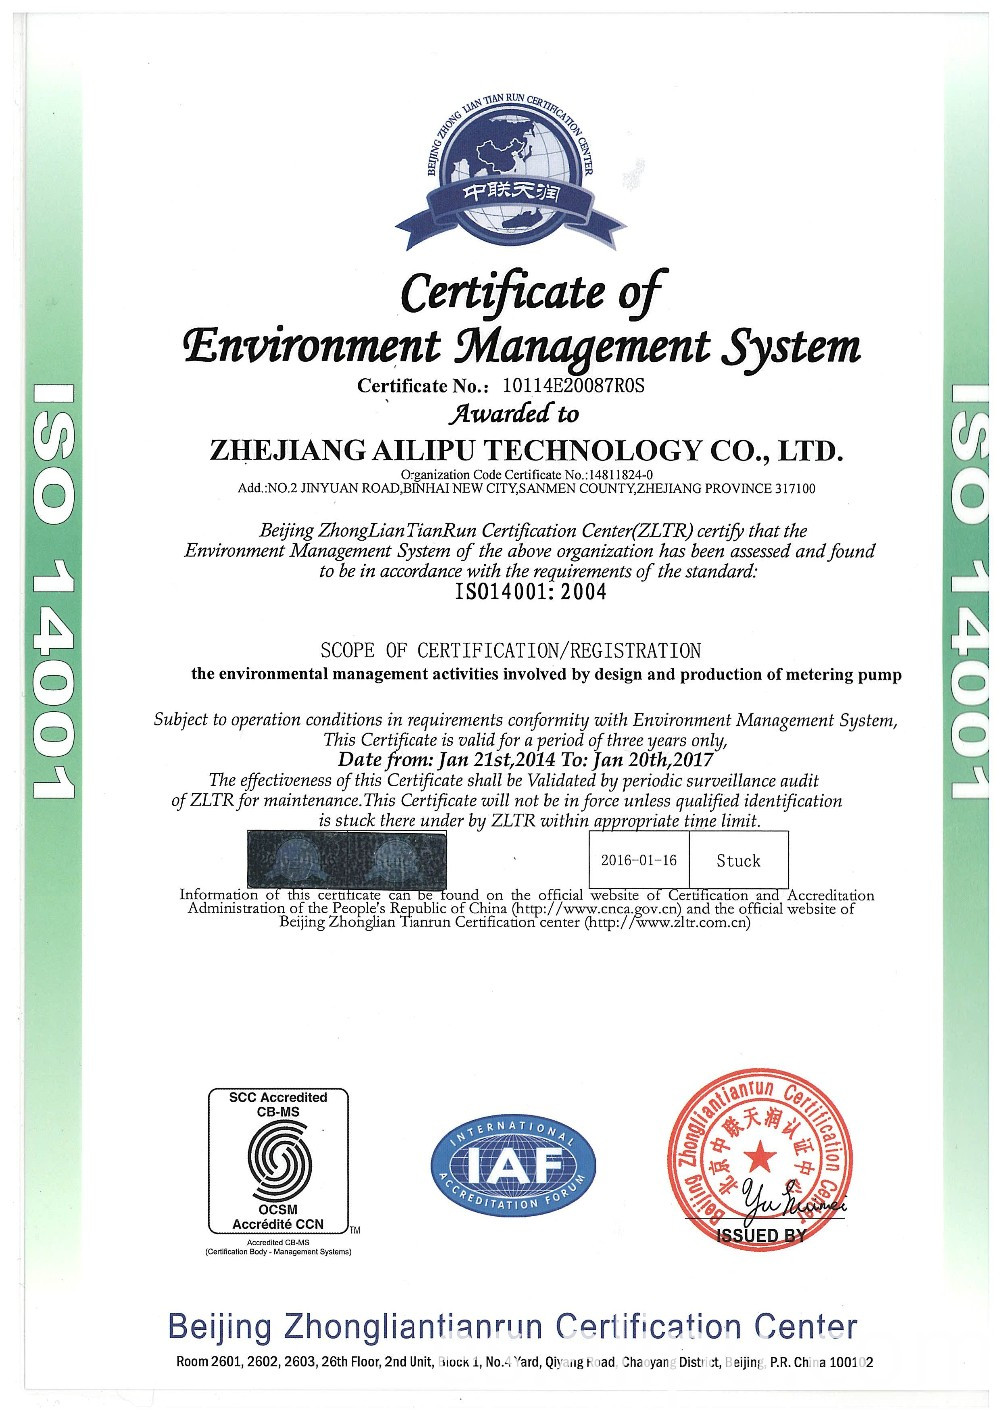 Certificate for environment